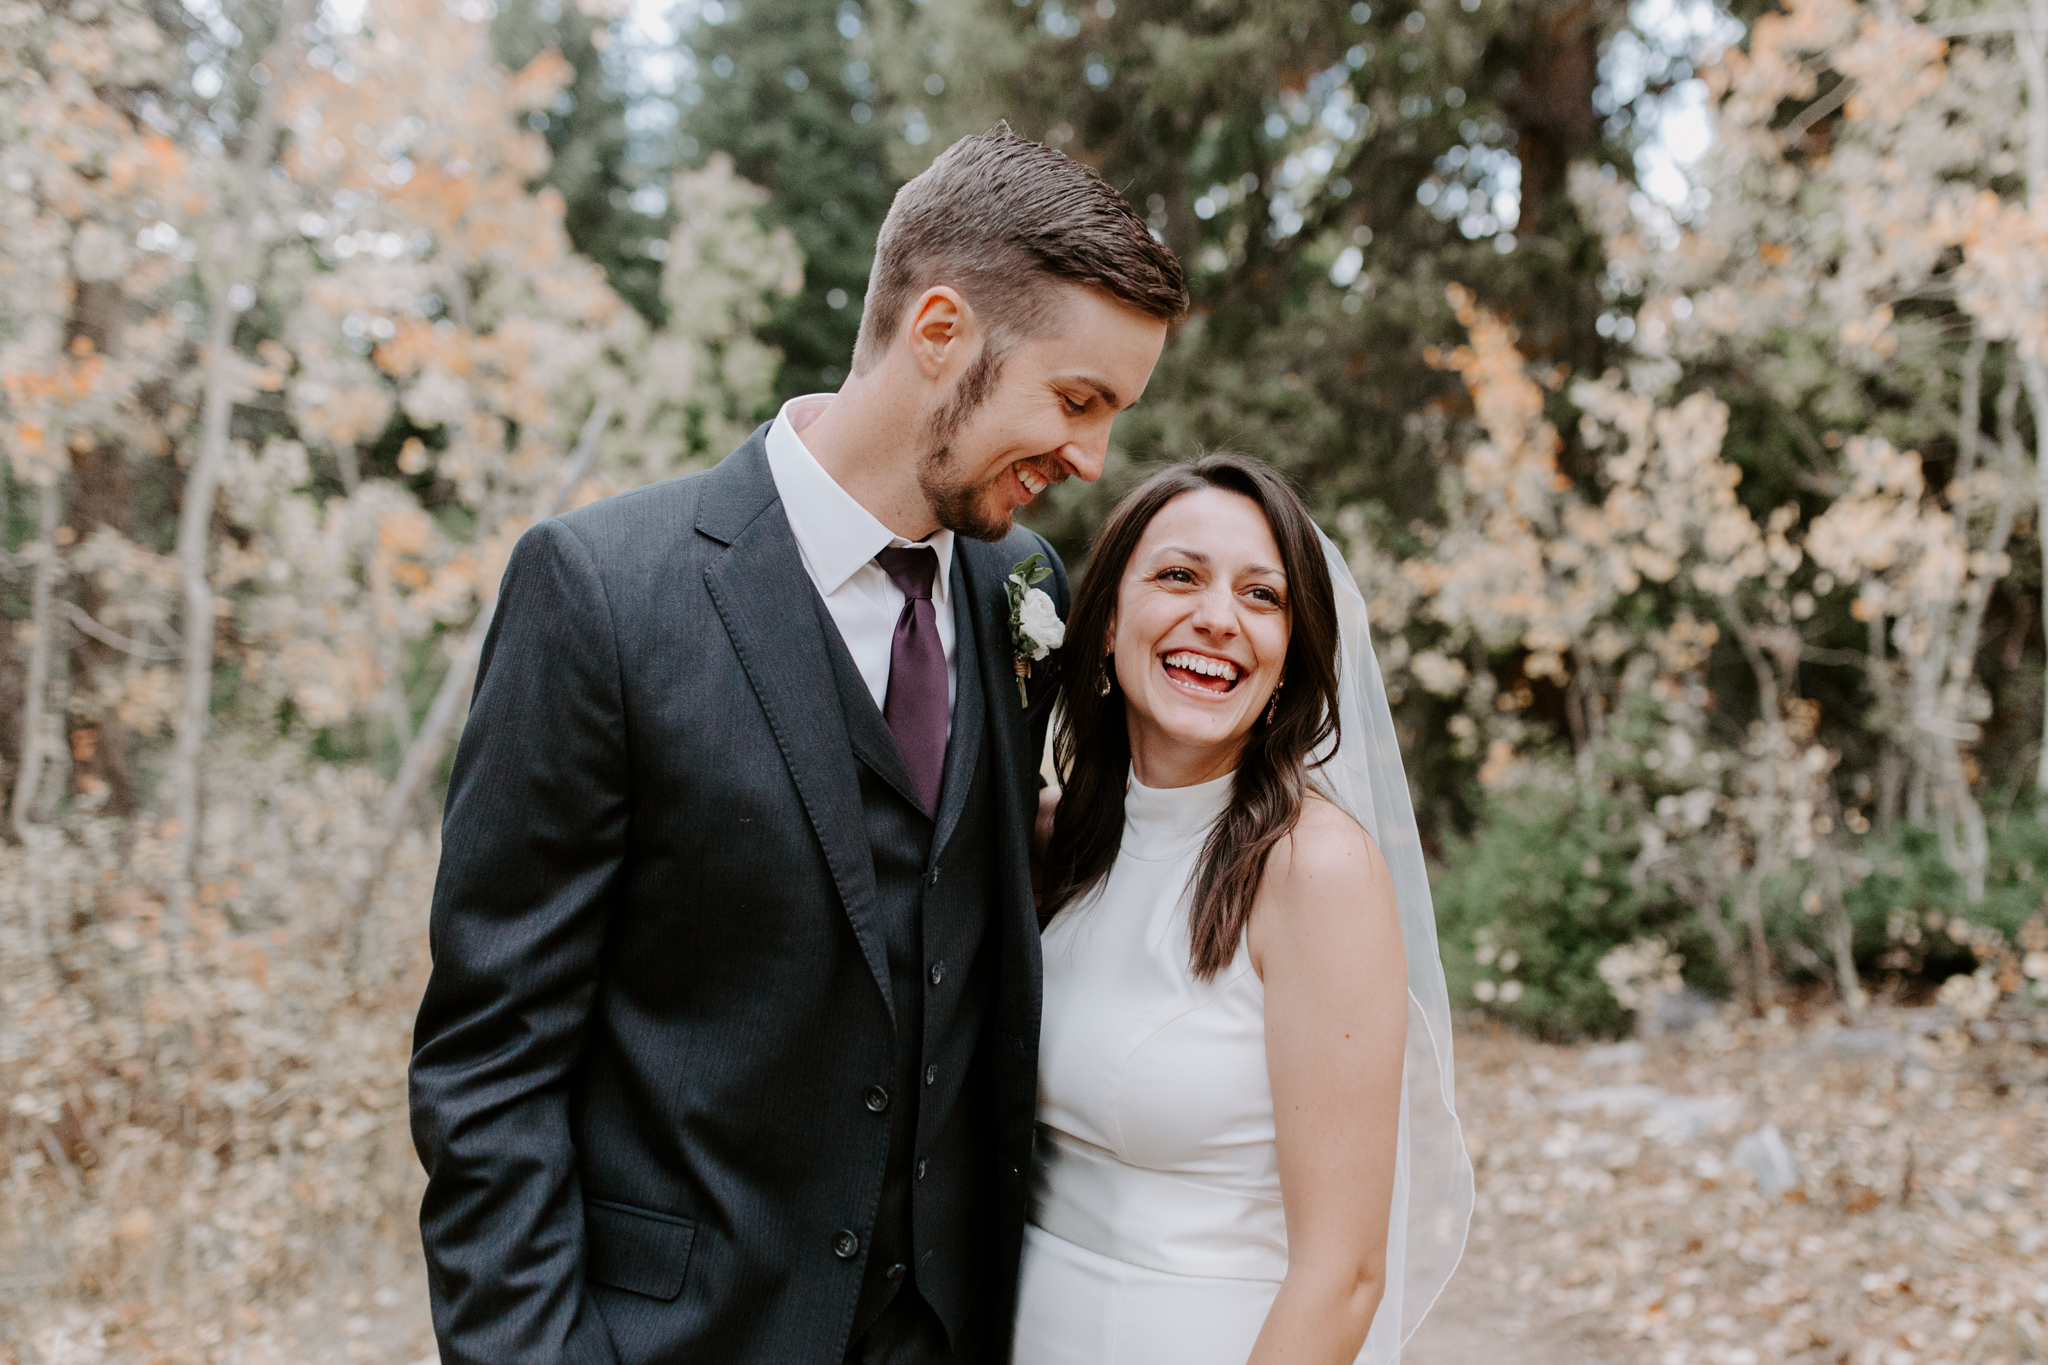 """Pierce & Chanda - """"Katelyn is so fun to work with! She has such a great personality and knew what shots we wanted. We are so happy with the way our photos turned out!"""""""